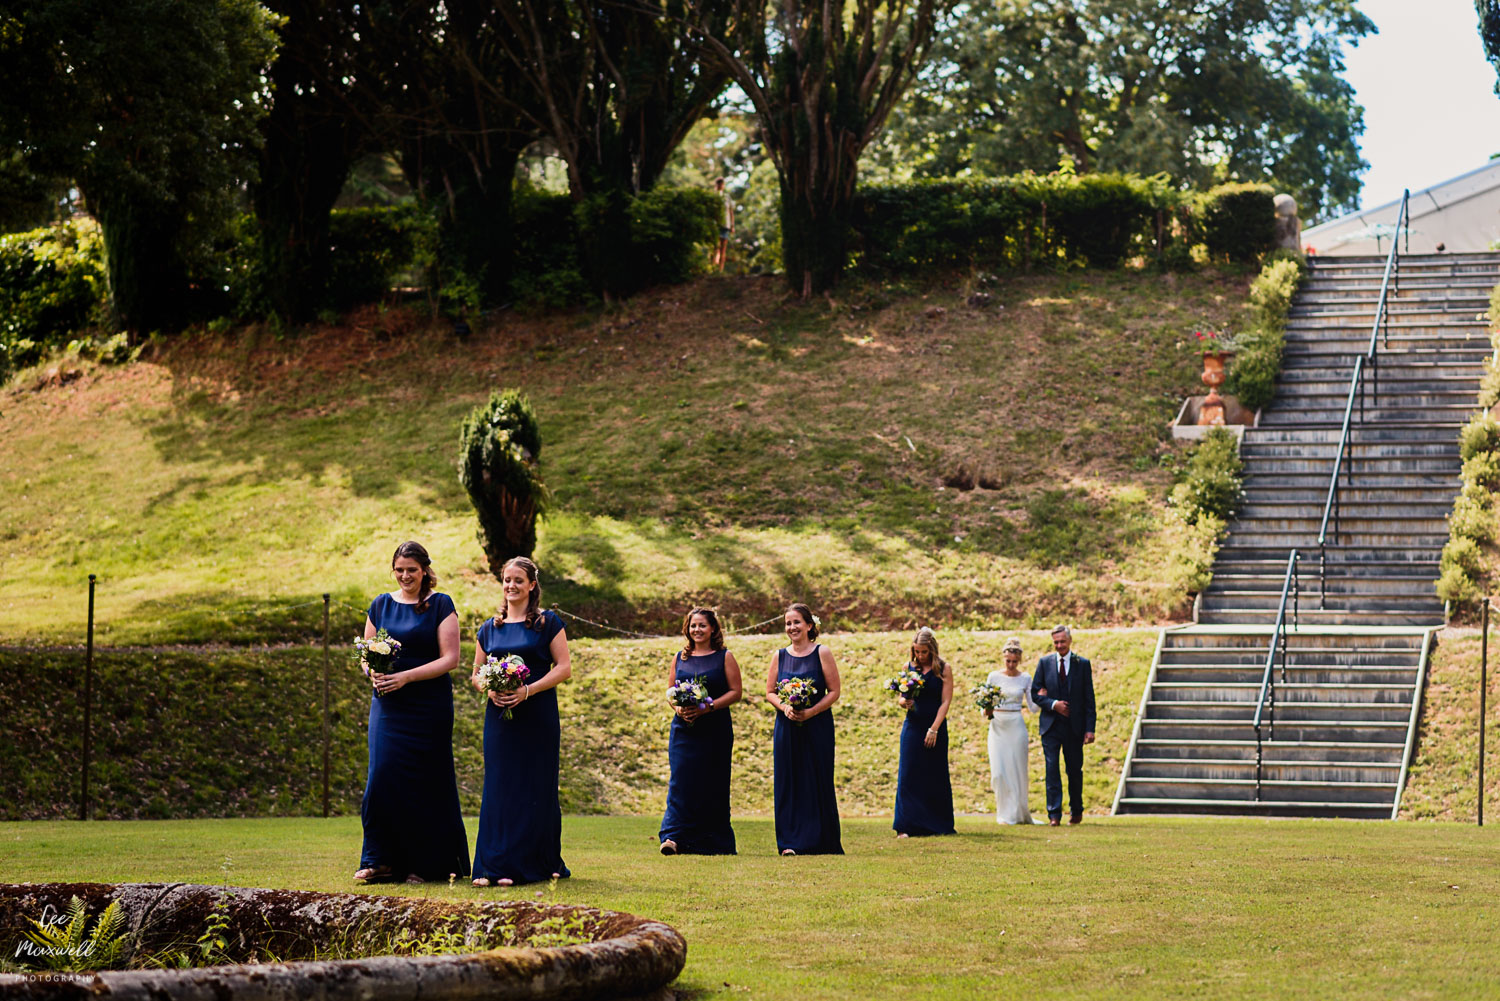 Bridal party walking to the ceremony at Tracey estate